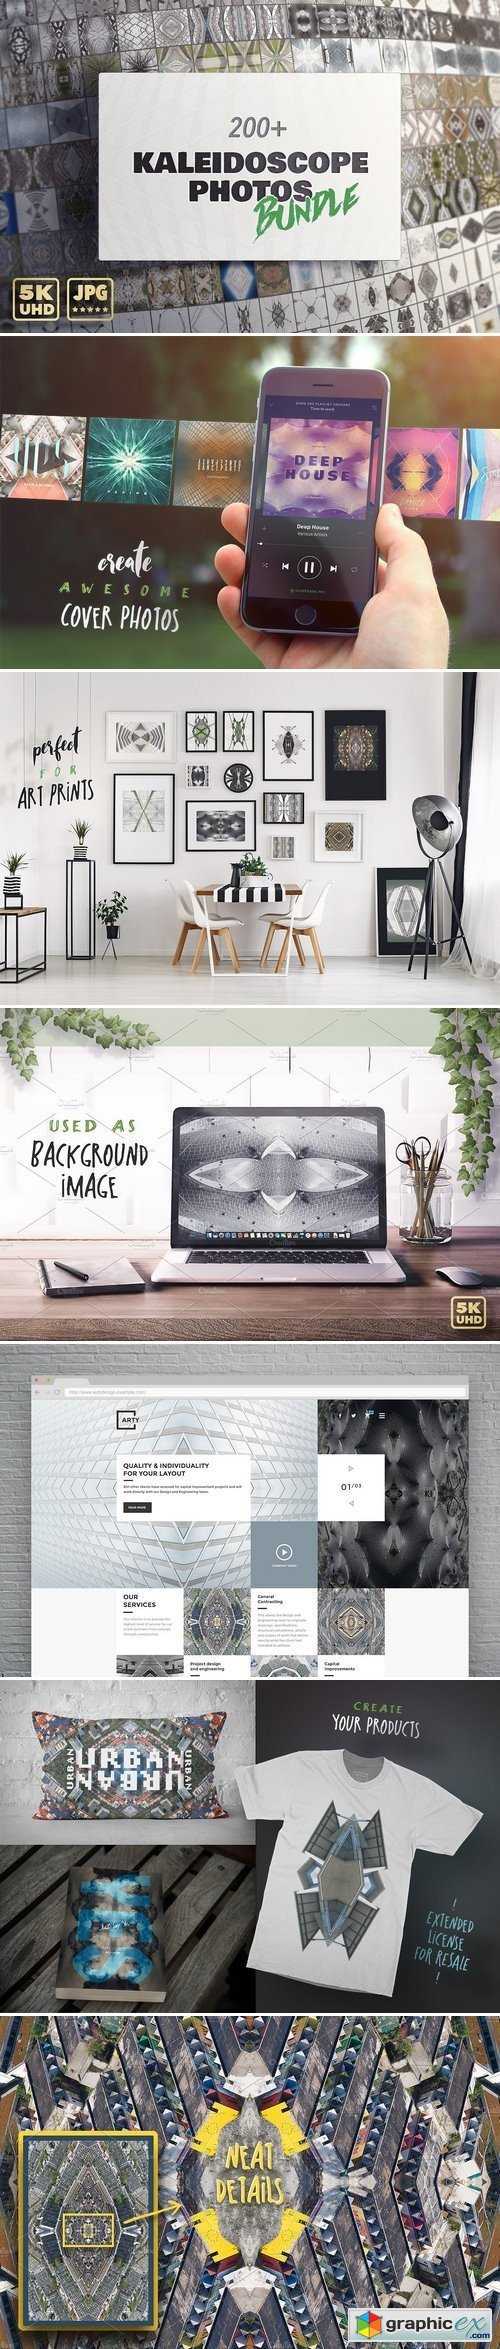 The Kaleidoscope Photo Bundle